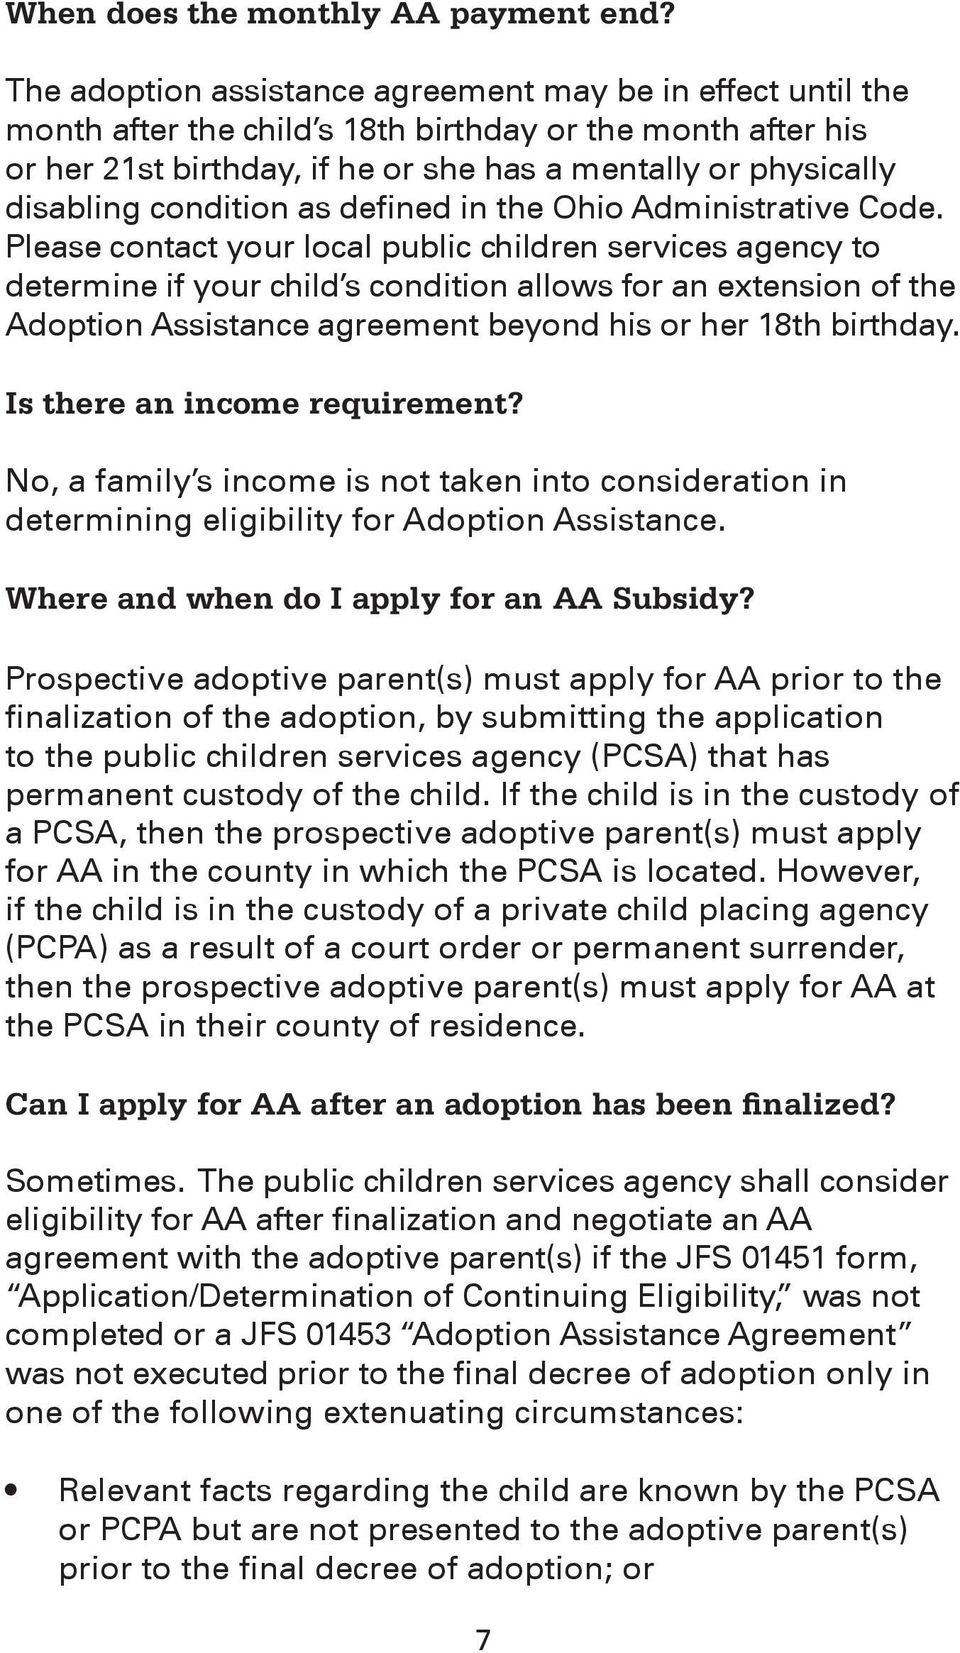 What Is the Adoption Assistance and Child Welfare Act pictures